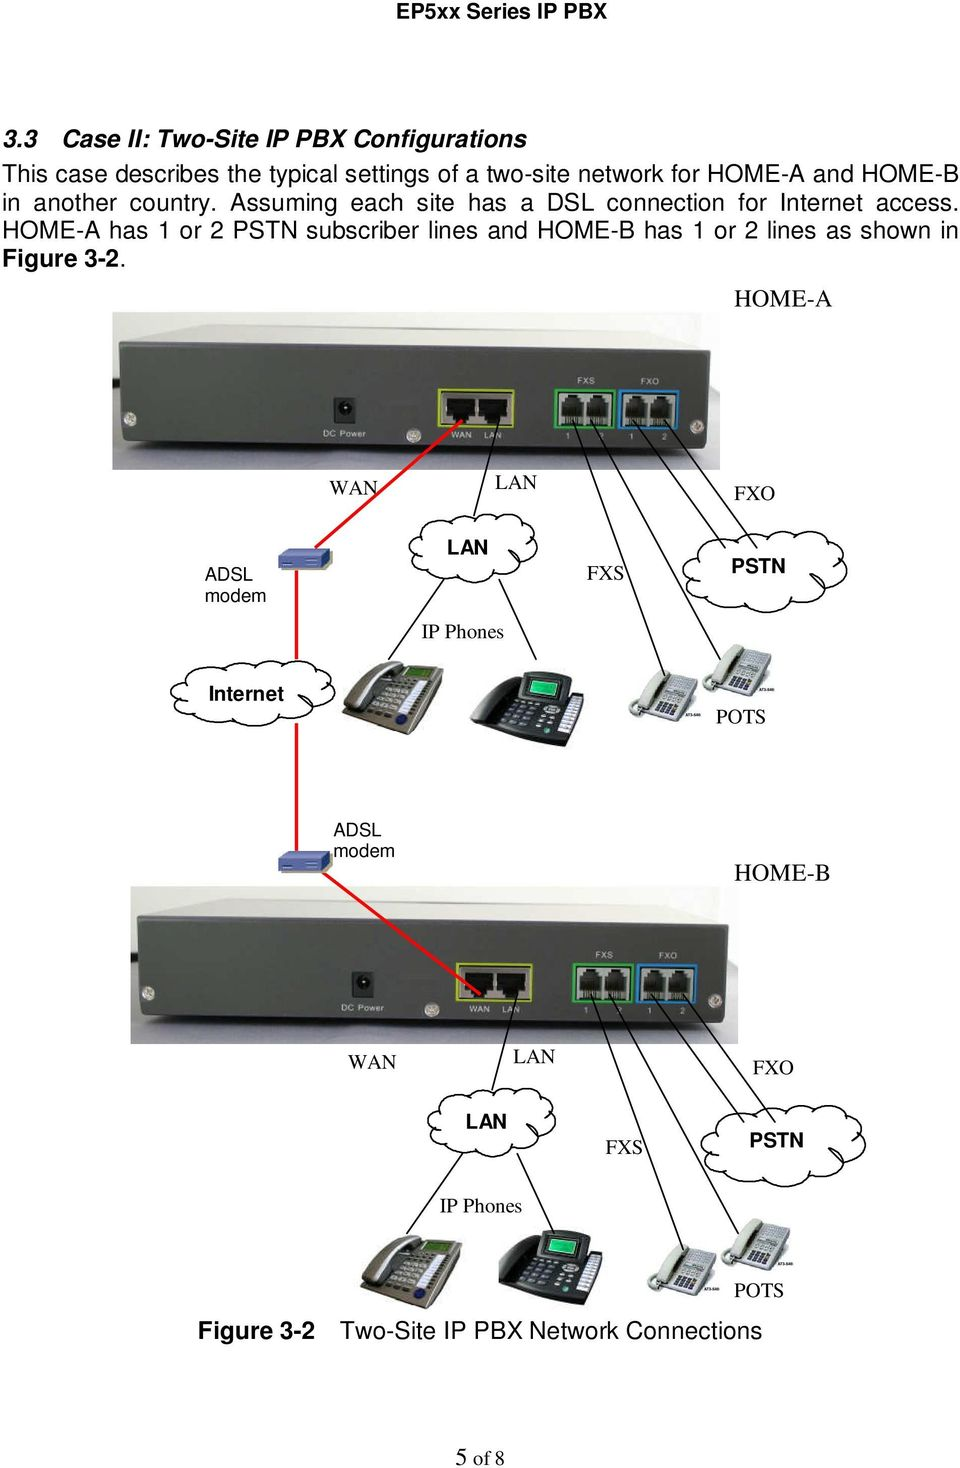 HOME-A has 1 or 2 PSTN subscriber lines and HOME-B has 1 or 2 lines as shown in Figure 3-2.